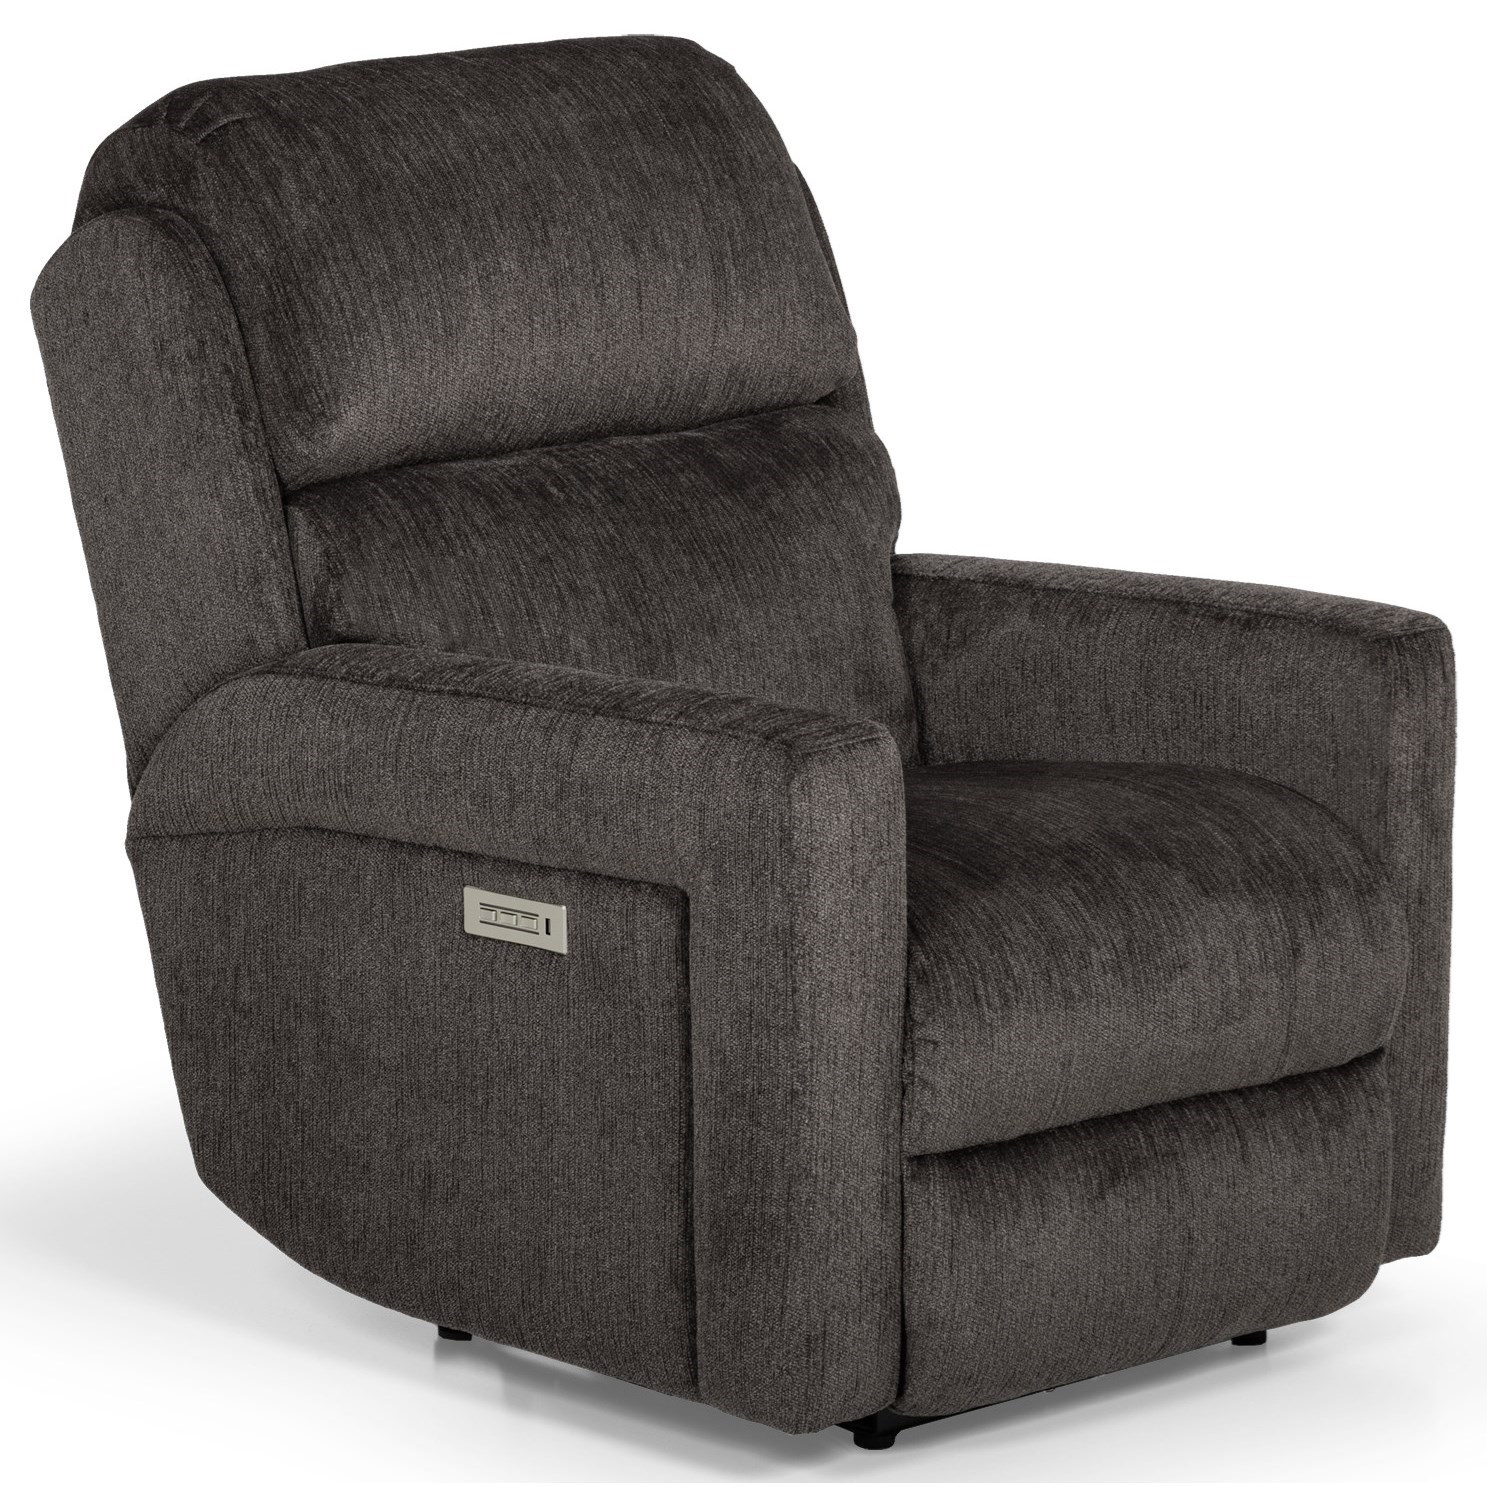 945 Reclining Chair by Sunset Home at Sadler's Home Furnishings